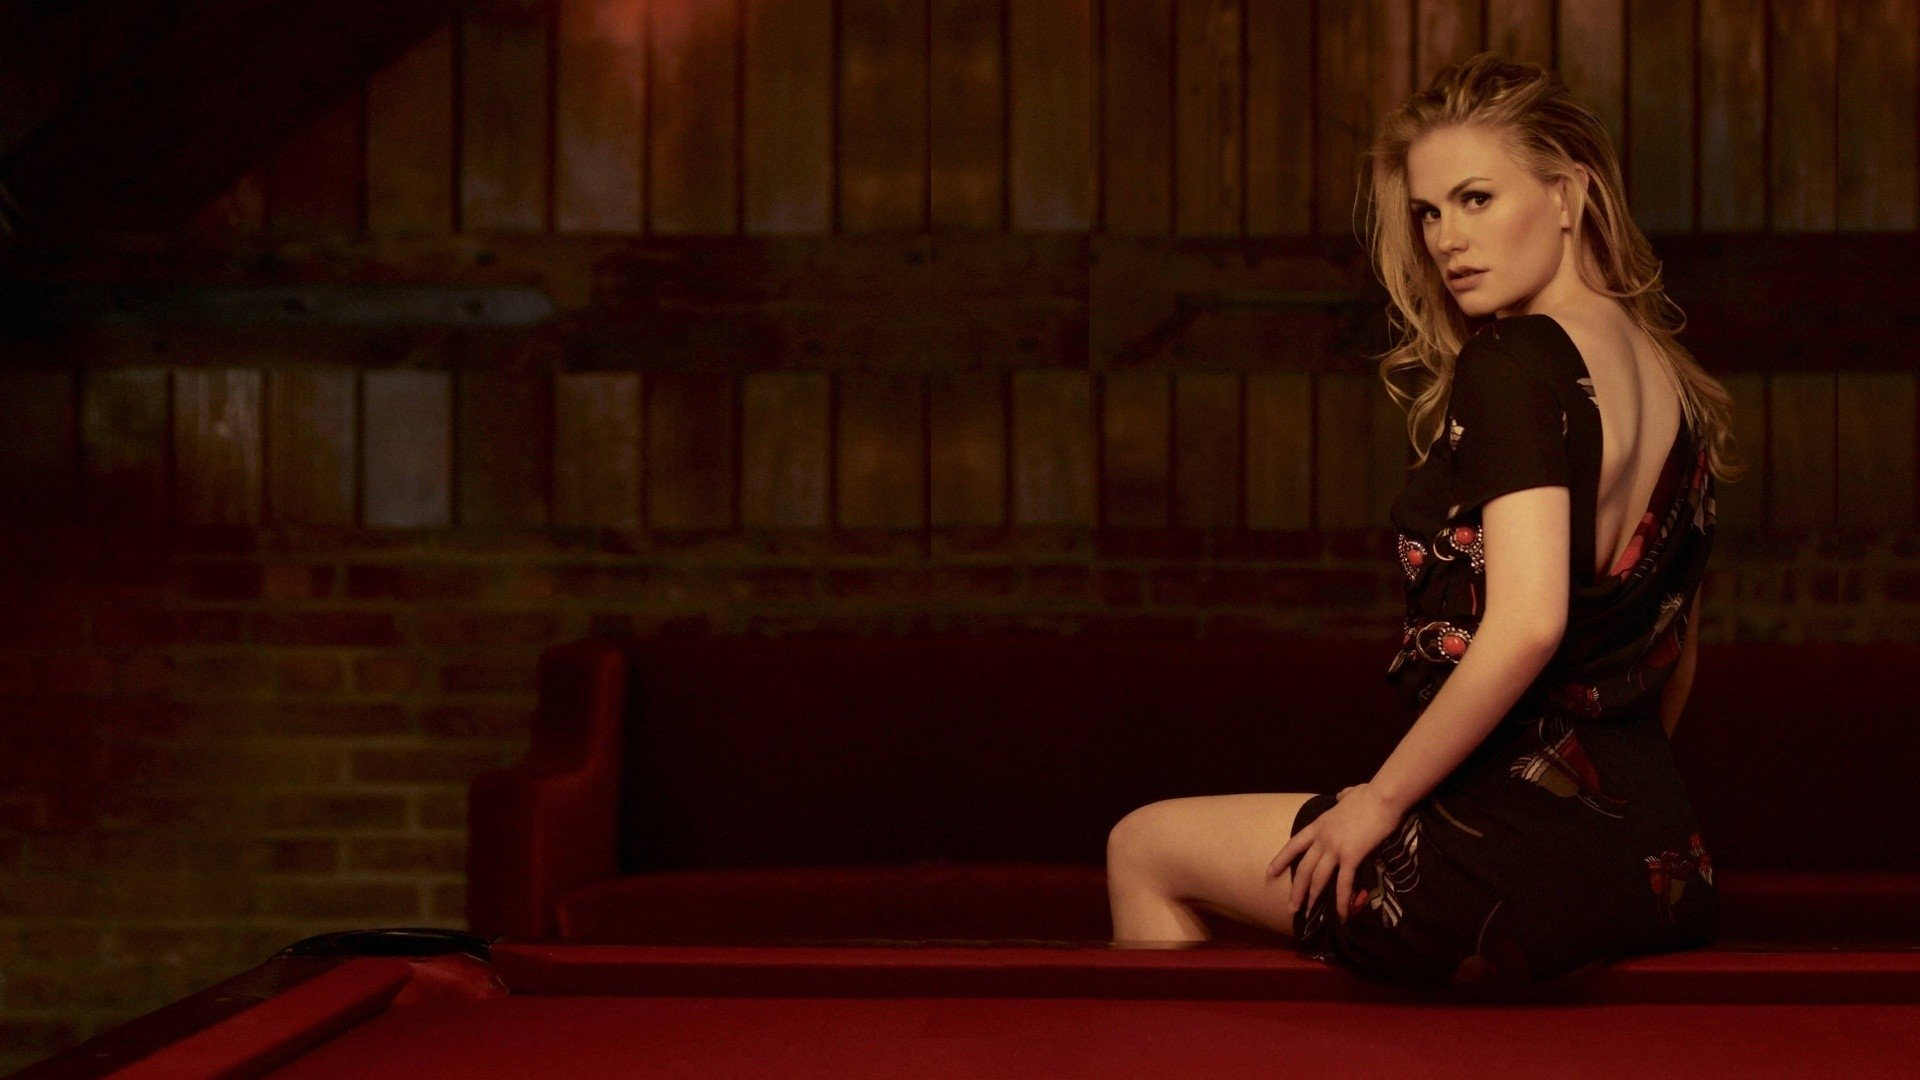 1920x1080 - Anna Paquin Wallpapers 6